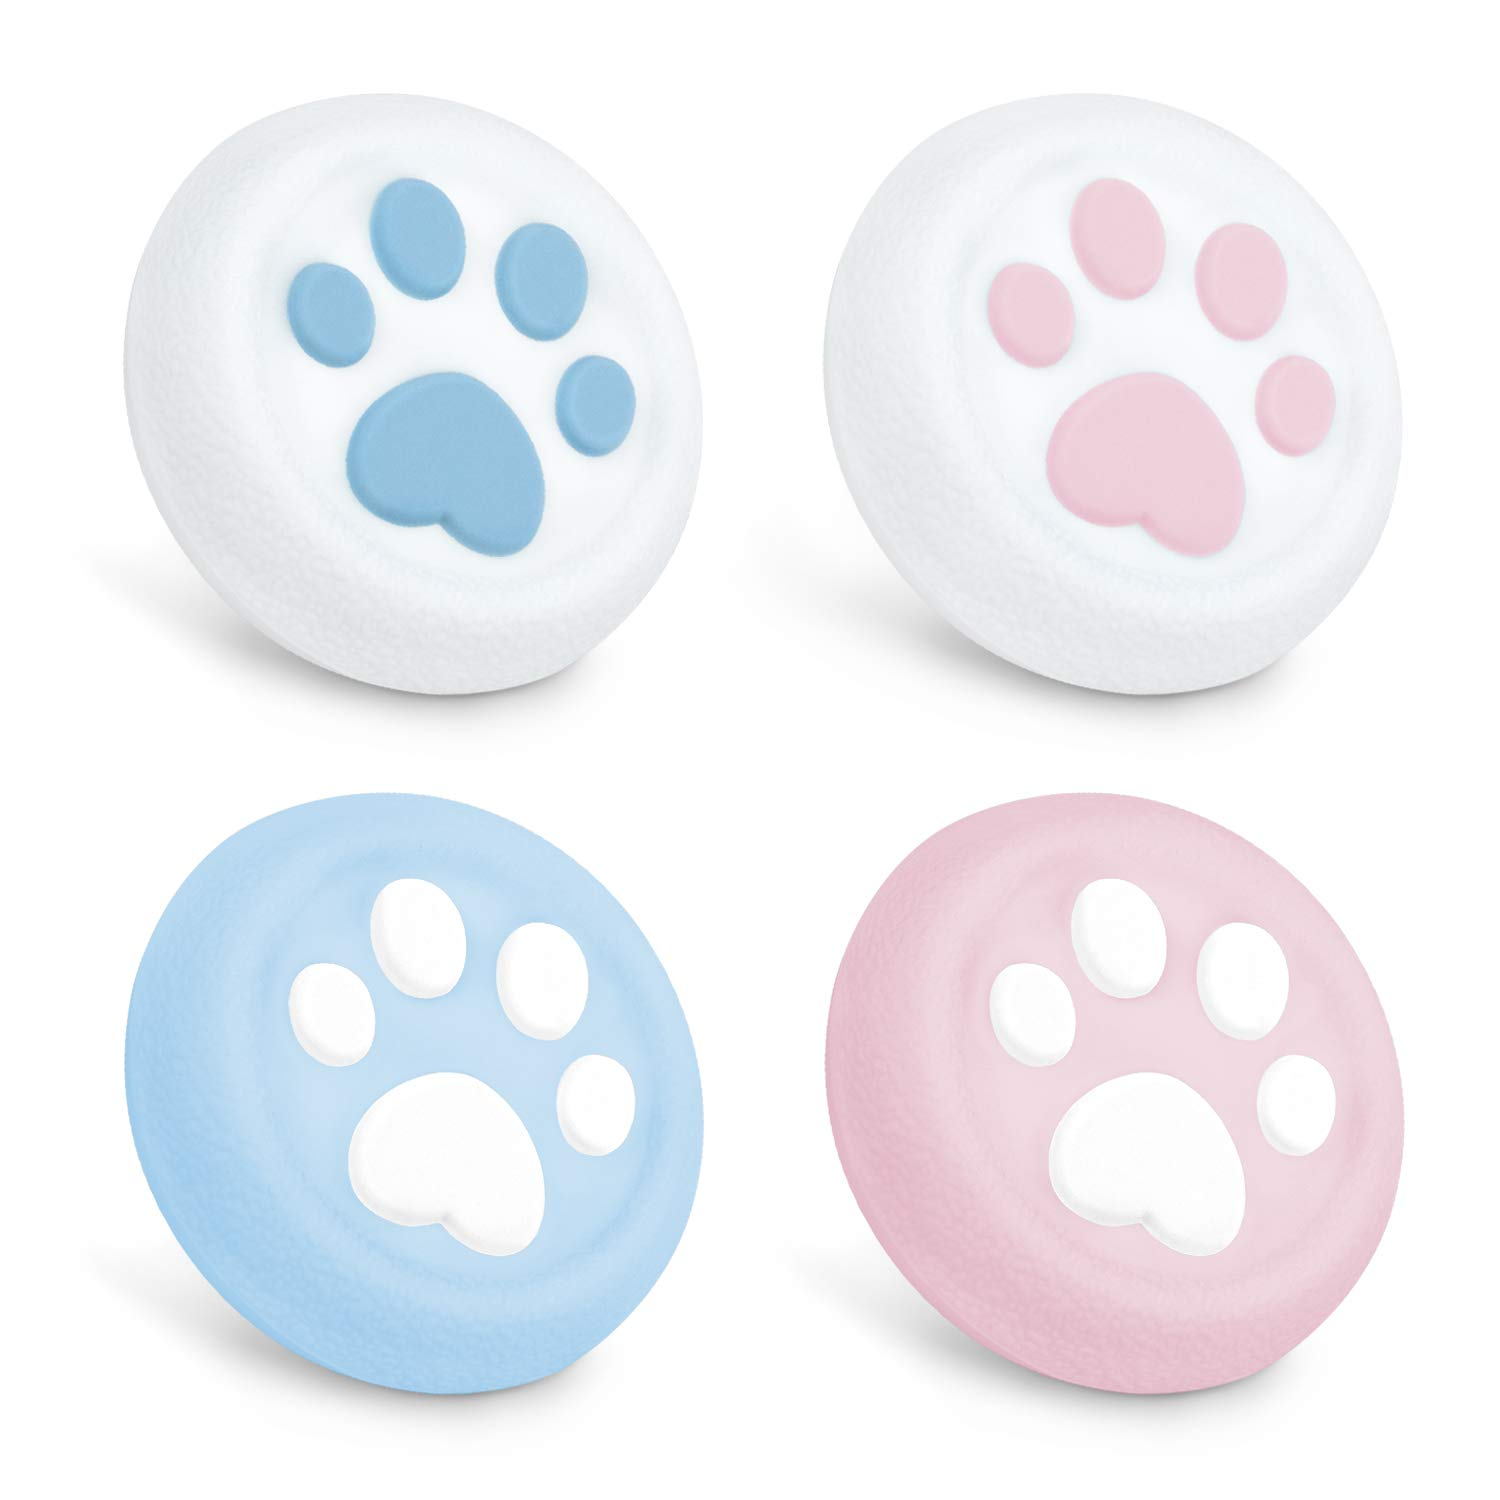 GeekShare Cat Claw Playstation 4 Controller Thumb Grips, Thumbsticks Cover Set Compatible with Switch Pro Controller and PS4 Controller, 2 Pair / 4 Pcs - Pink and Blue